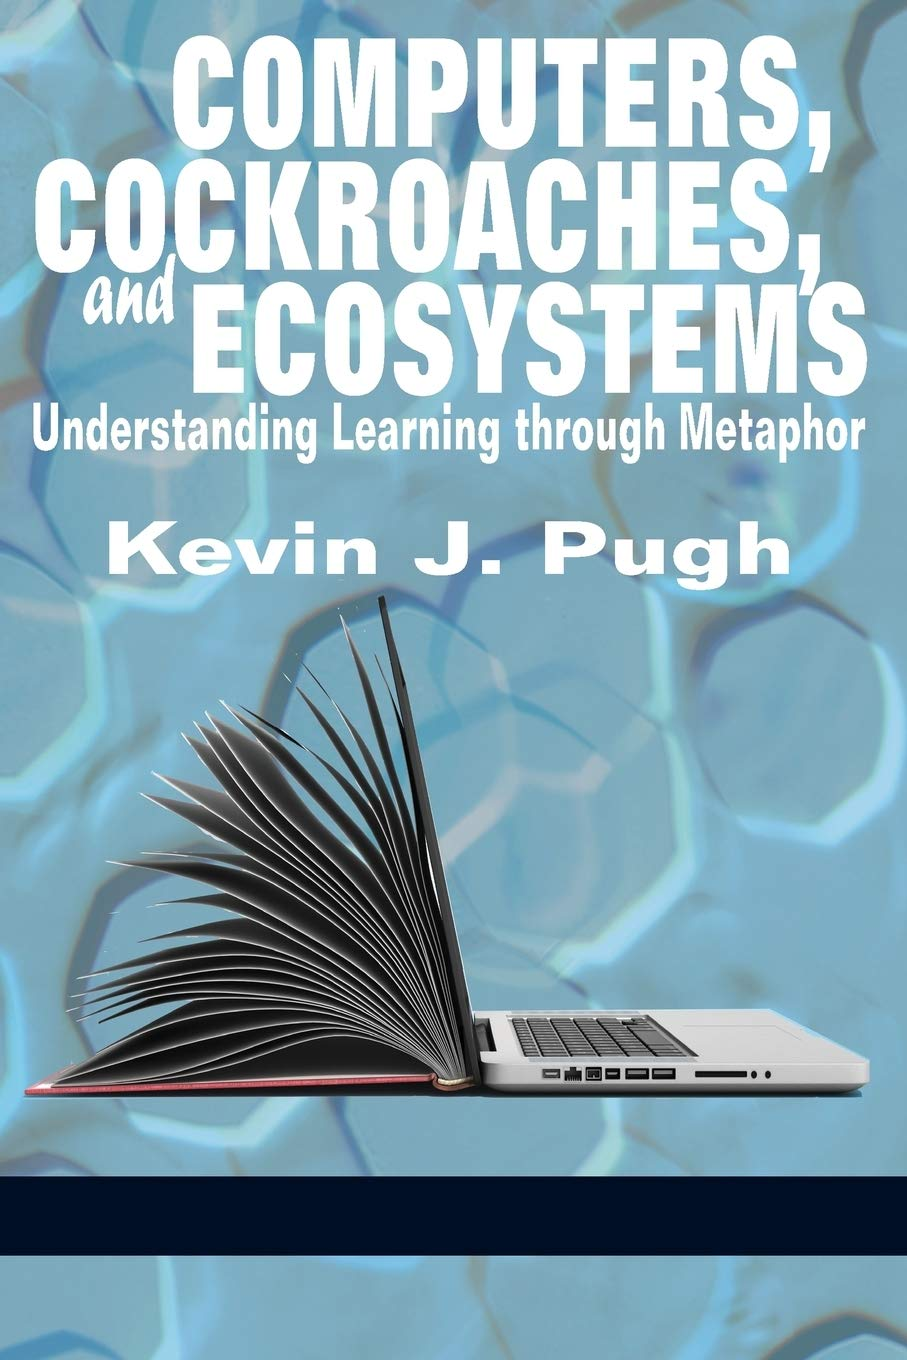 Computers, Cockroaches, and Ecosystems: Understanding Learning through Metaphor Paperback